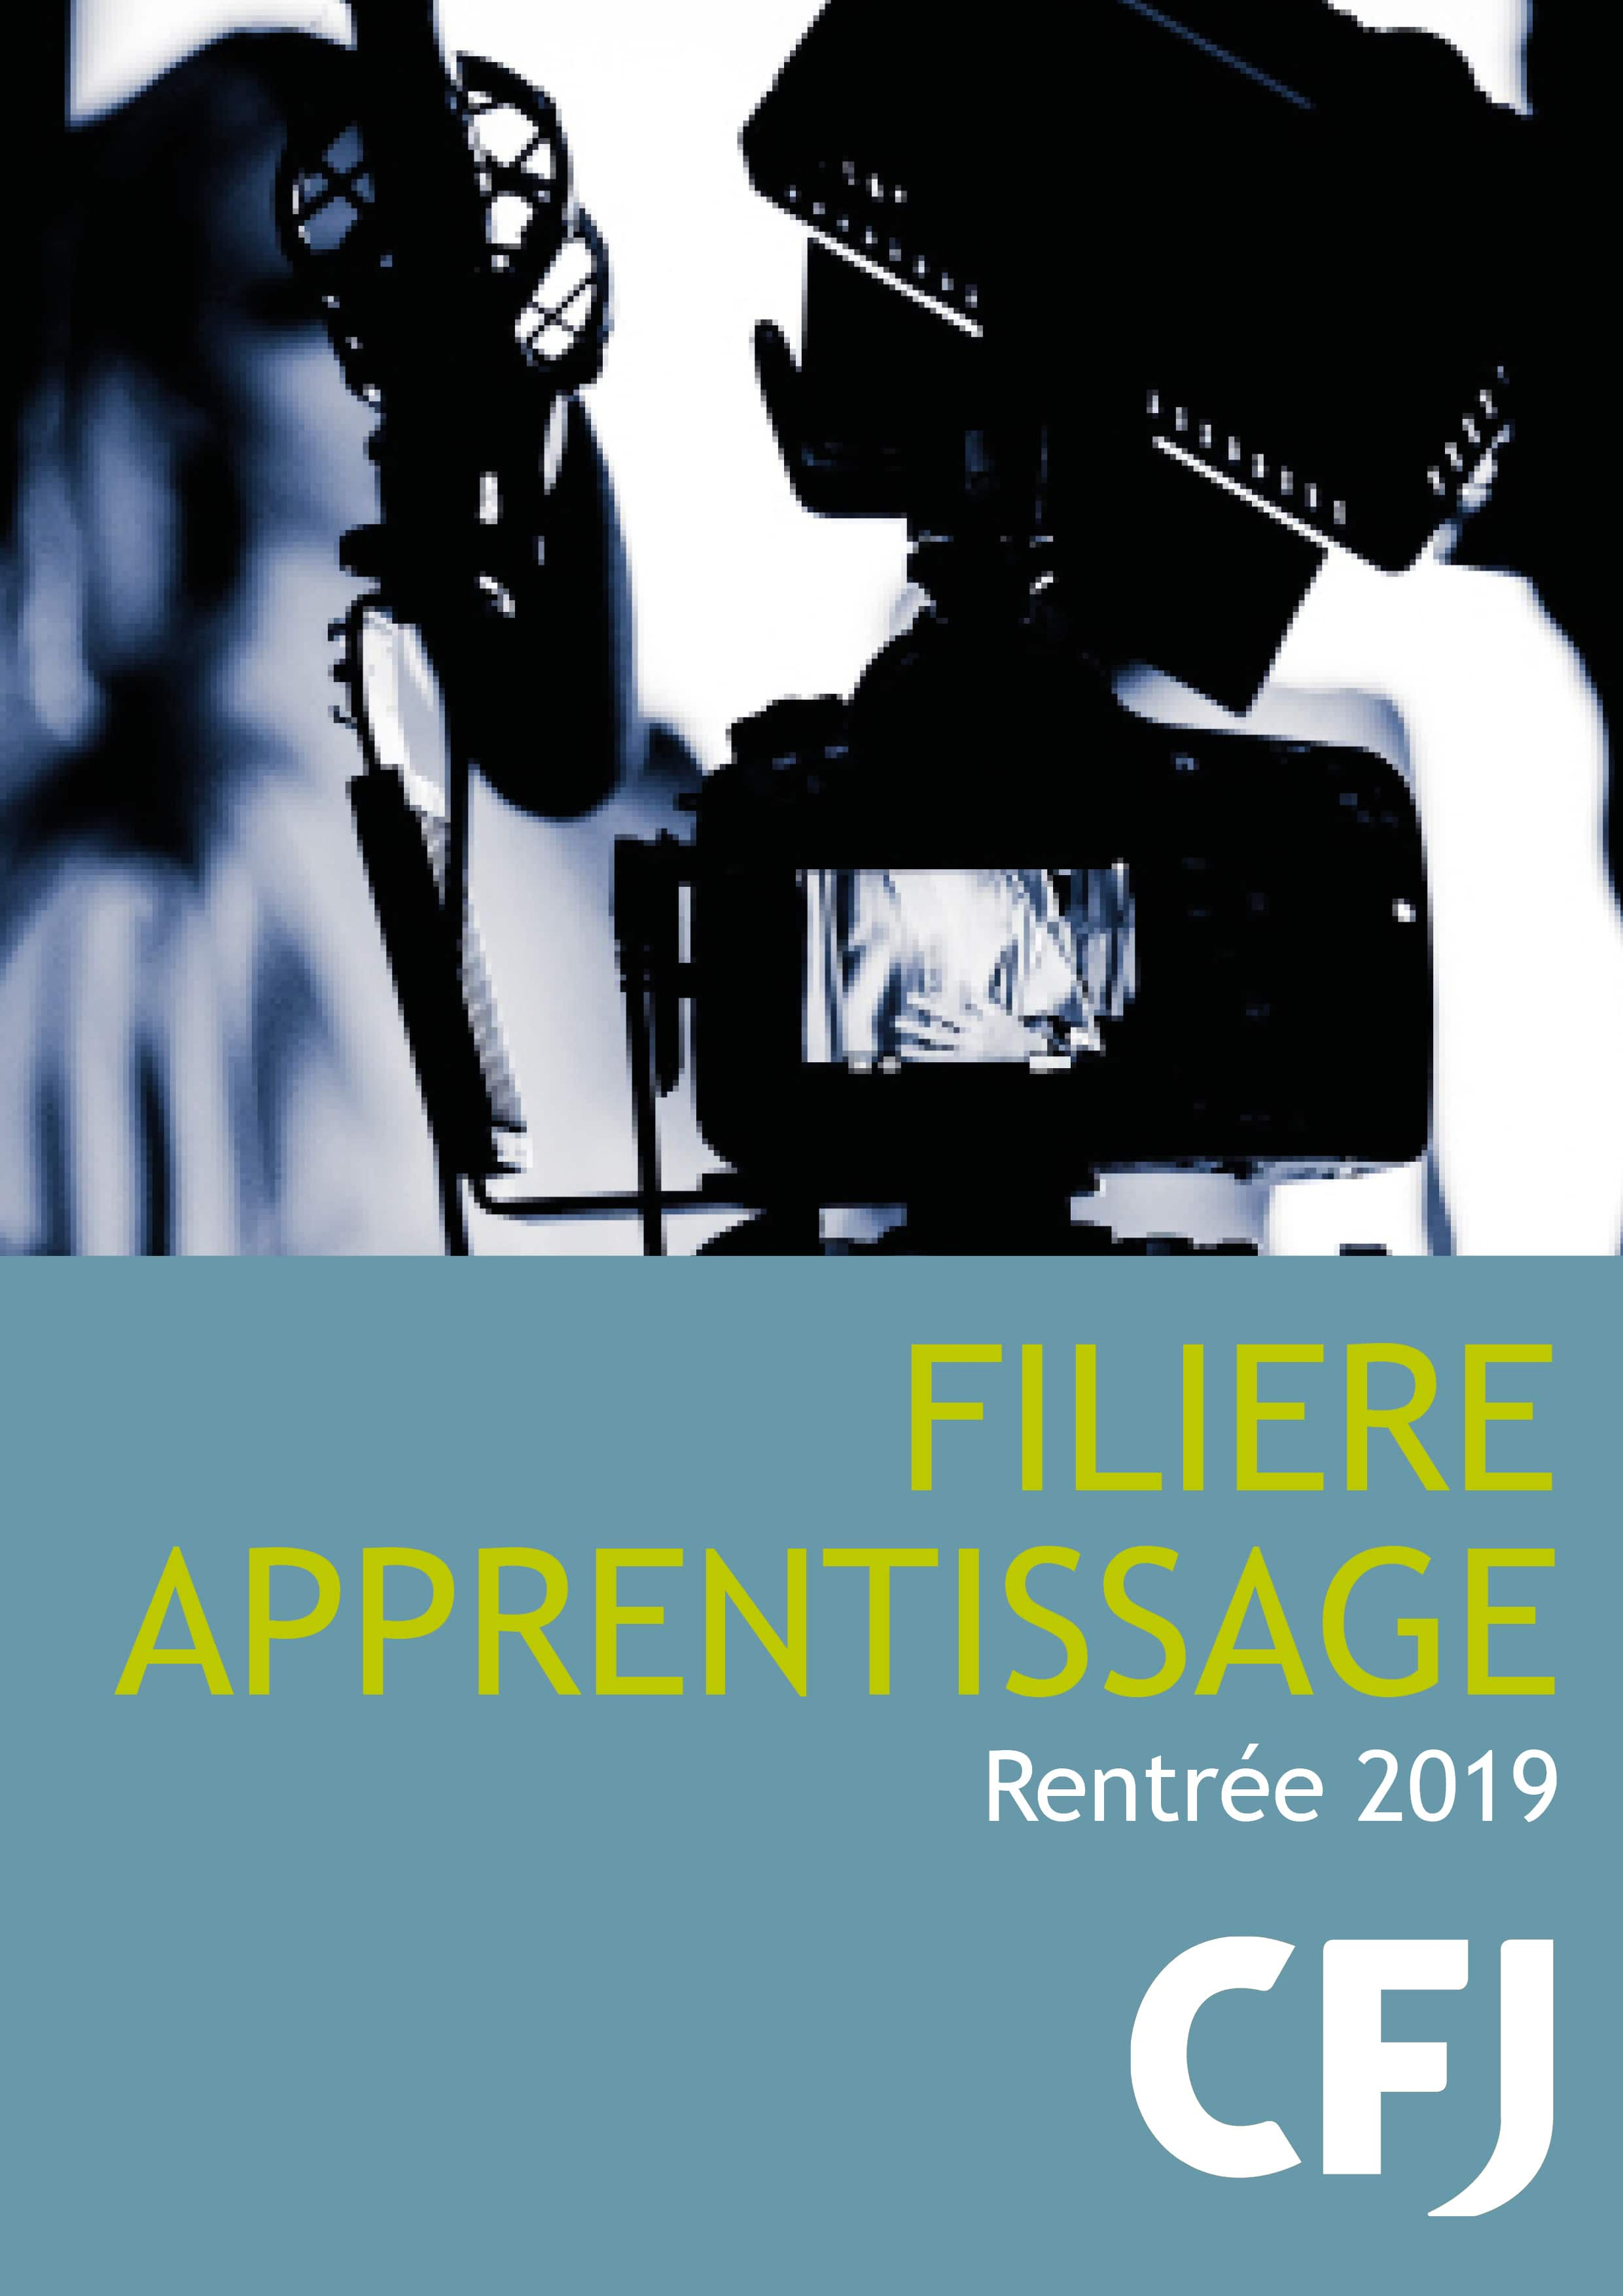 FILIERE APPRENTISSAGE 2019